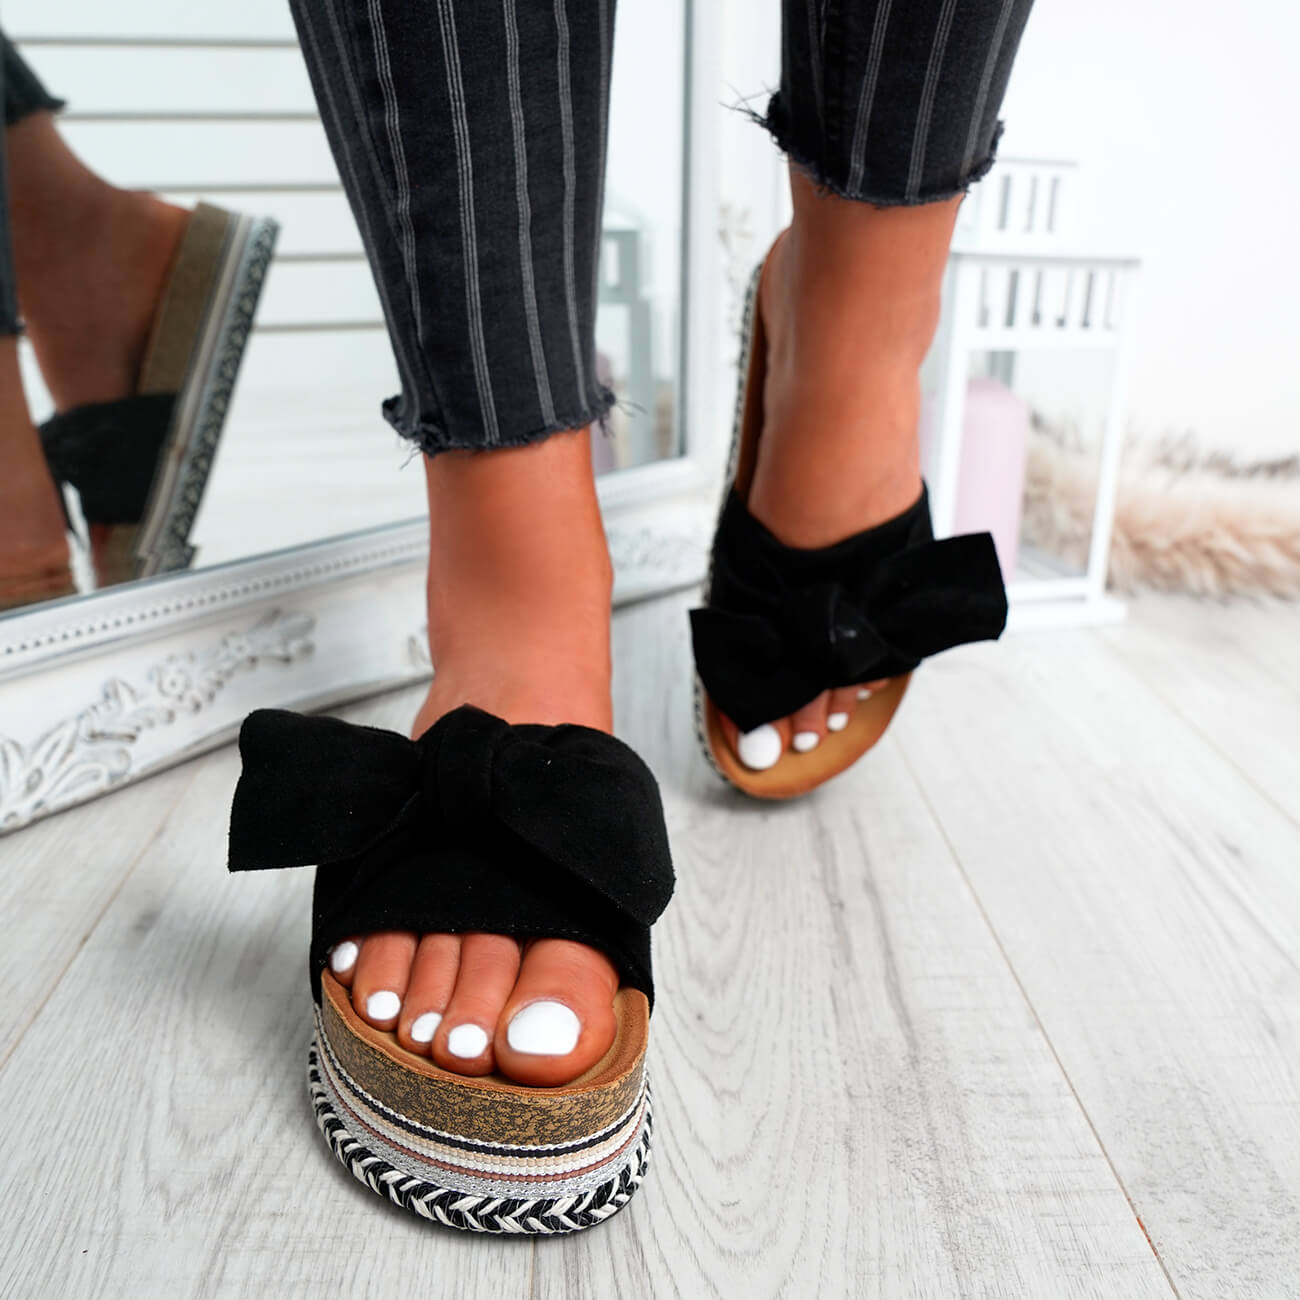 WOMENS-LADIES-BOW-SLIDERS-SLIP-ON-FLATFORMS-SUMMER-PARTY-SANDALS-SHOES-SIZE thumbnail 7